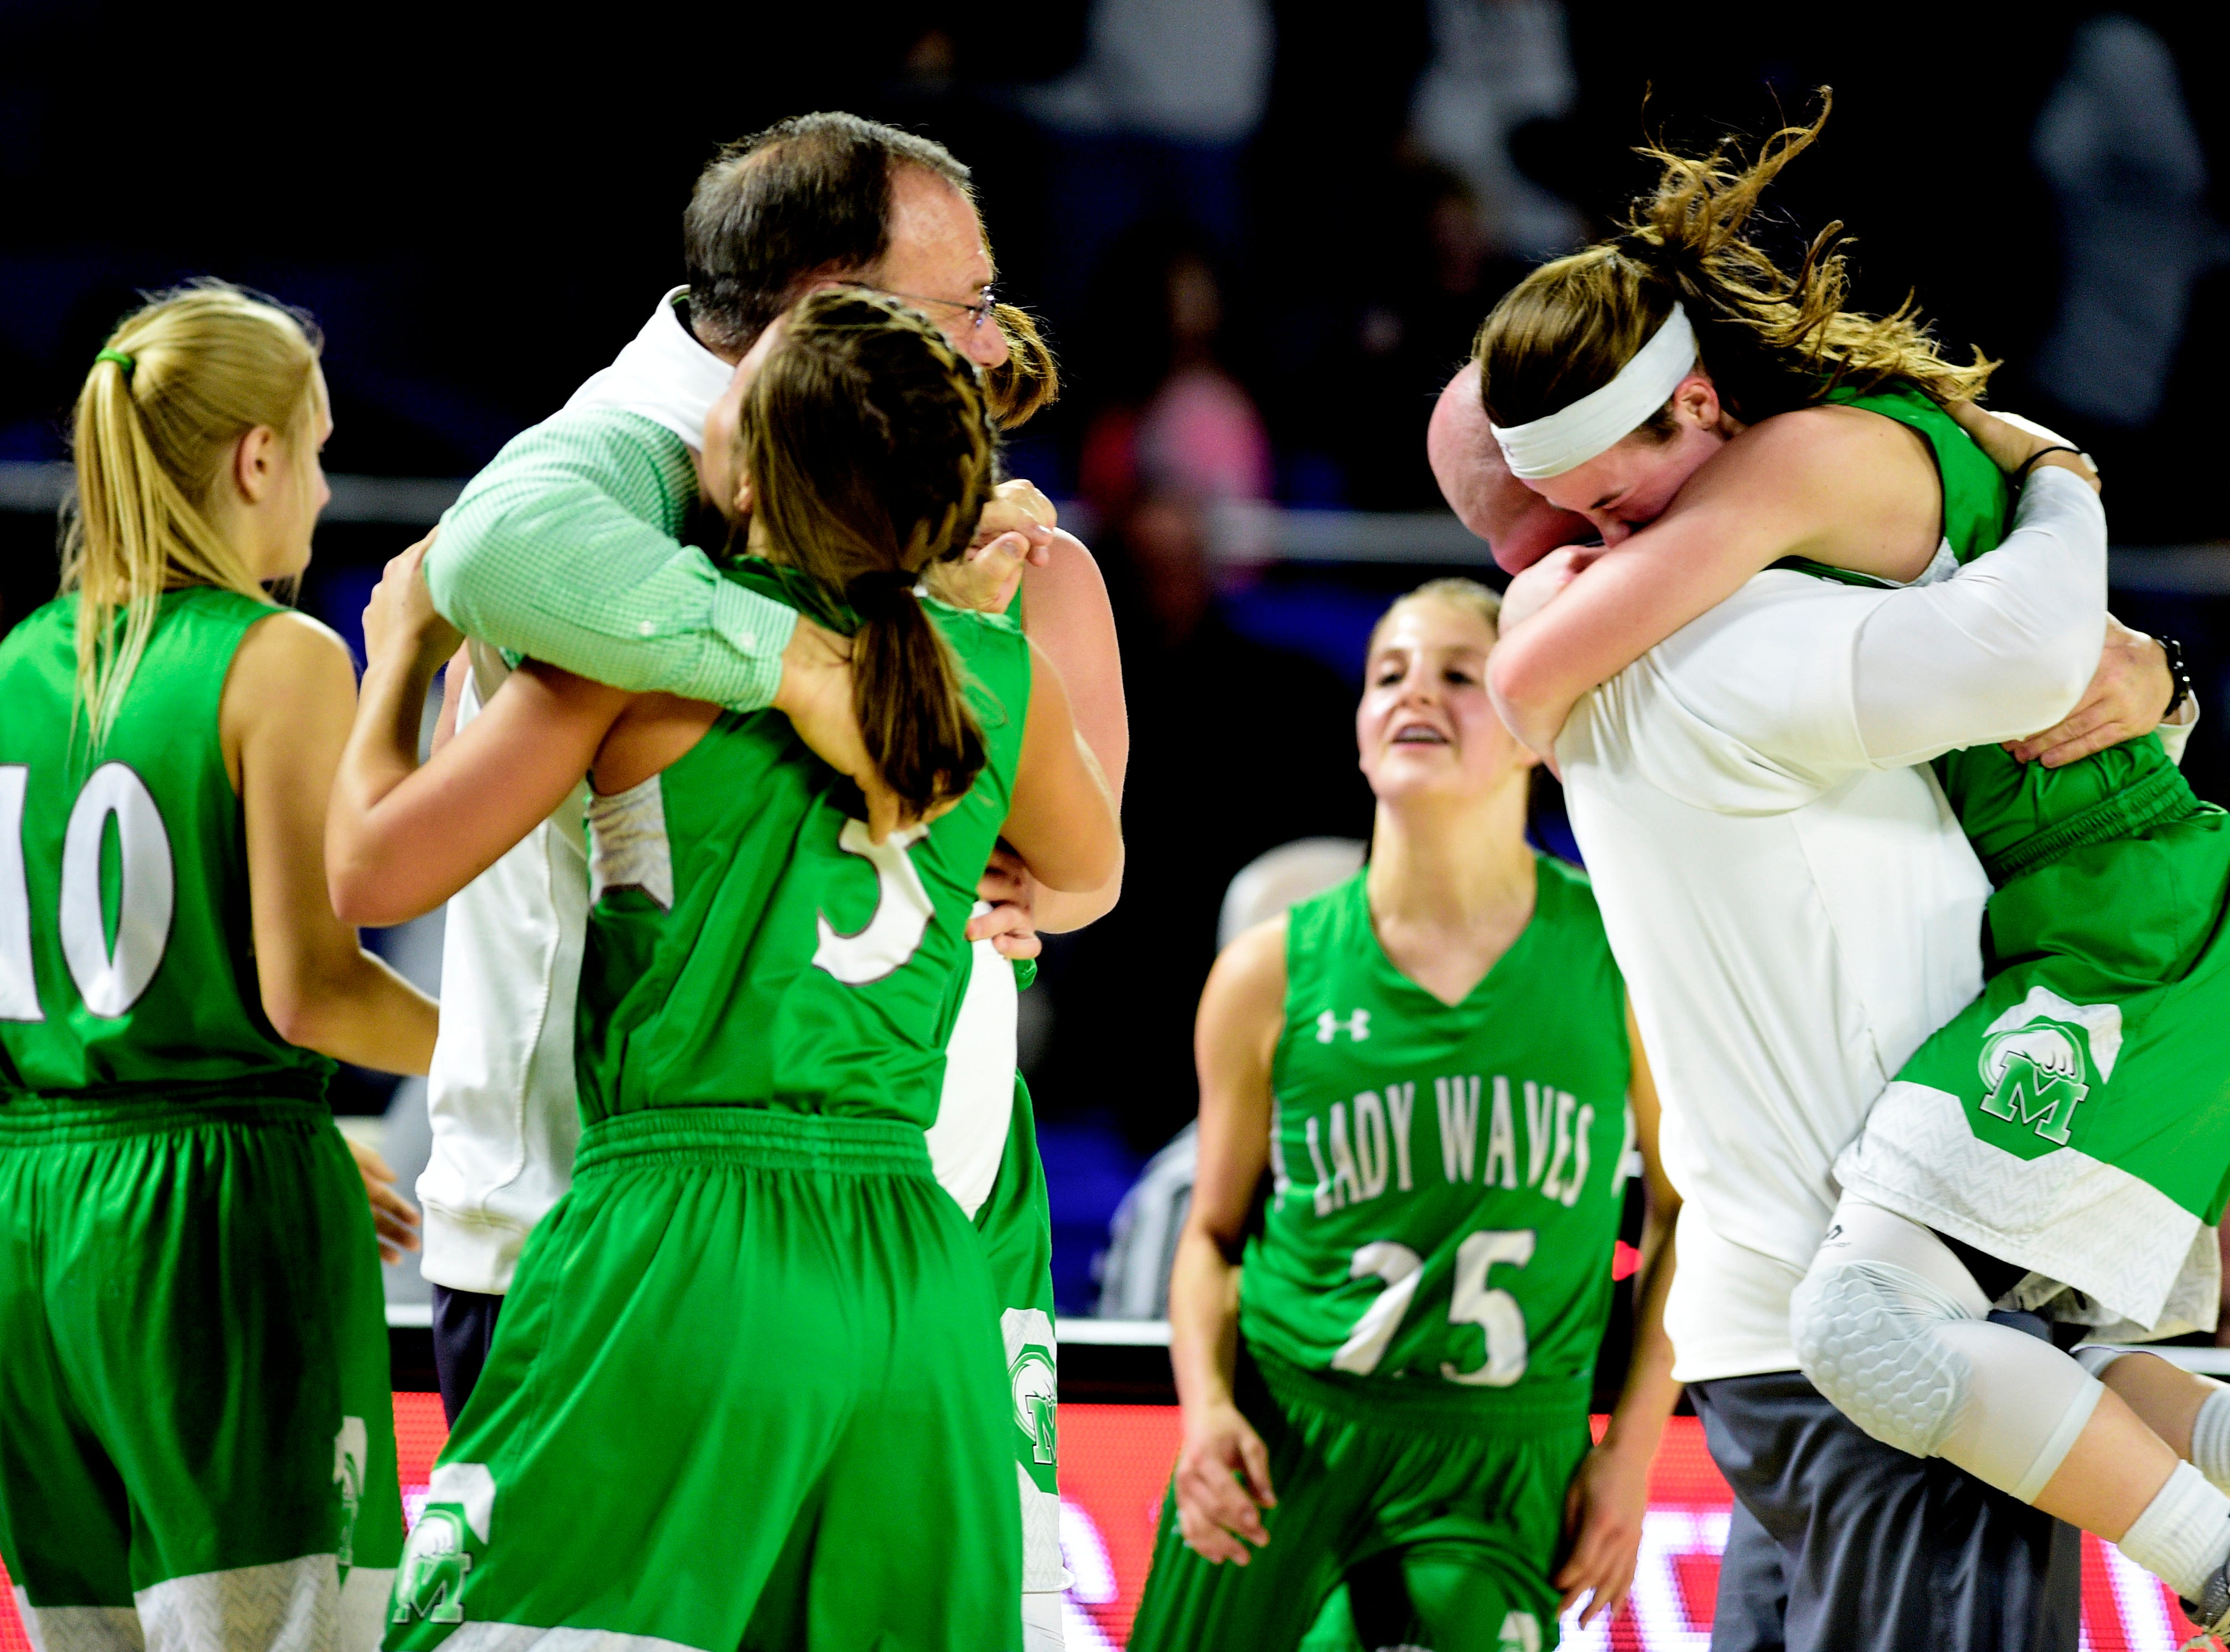 Midway's Caitlyn Ross (1) and Midway's Rebecca Lemasters (3) celebrate their win over Eagleville with their coaches at the TSSAA girls state tournament at the Murphy Center in Murfreesboro, Tennessee on Thursday, March 7, 2019.